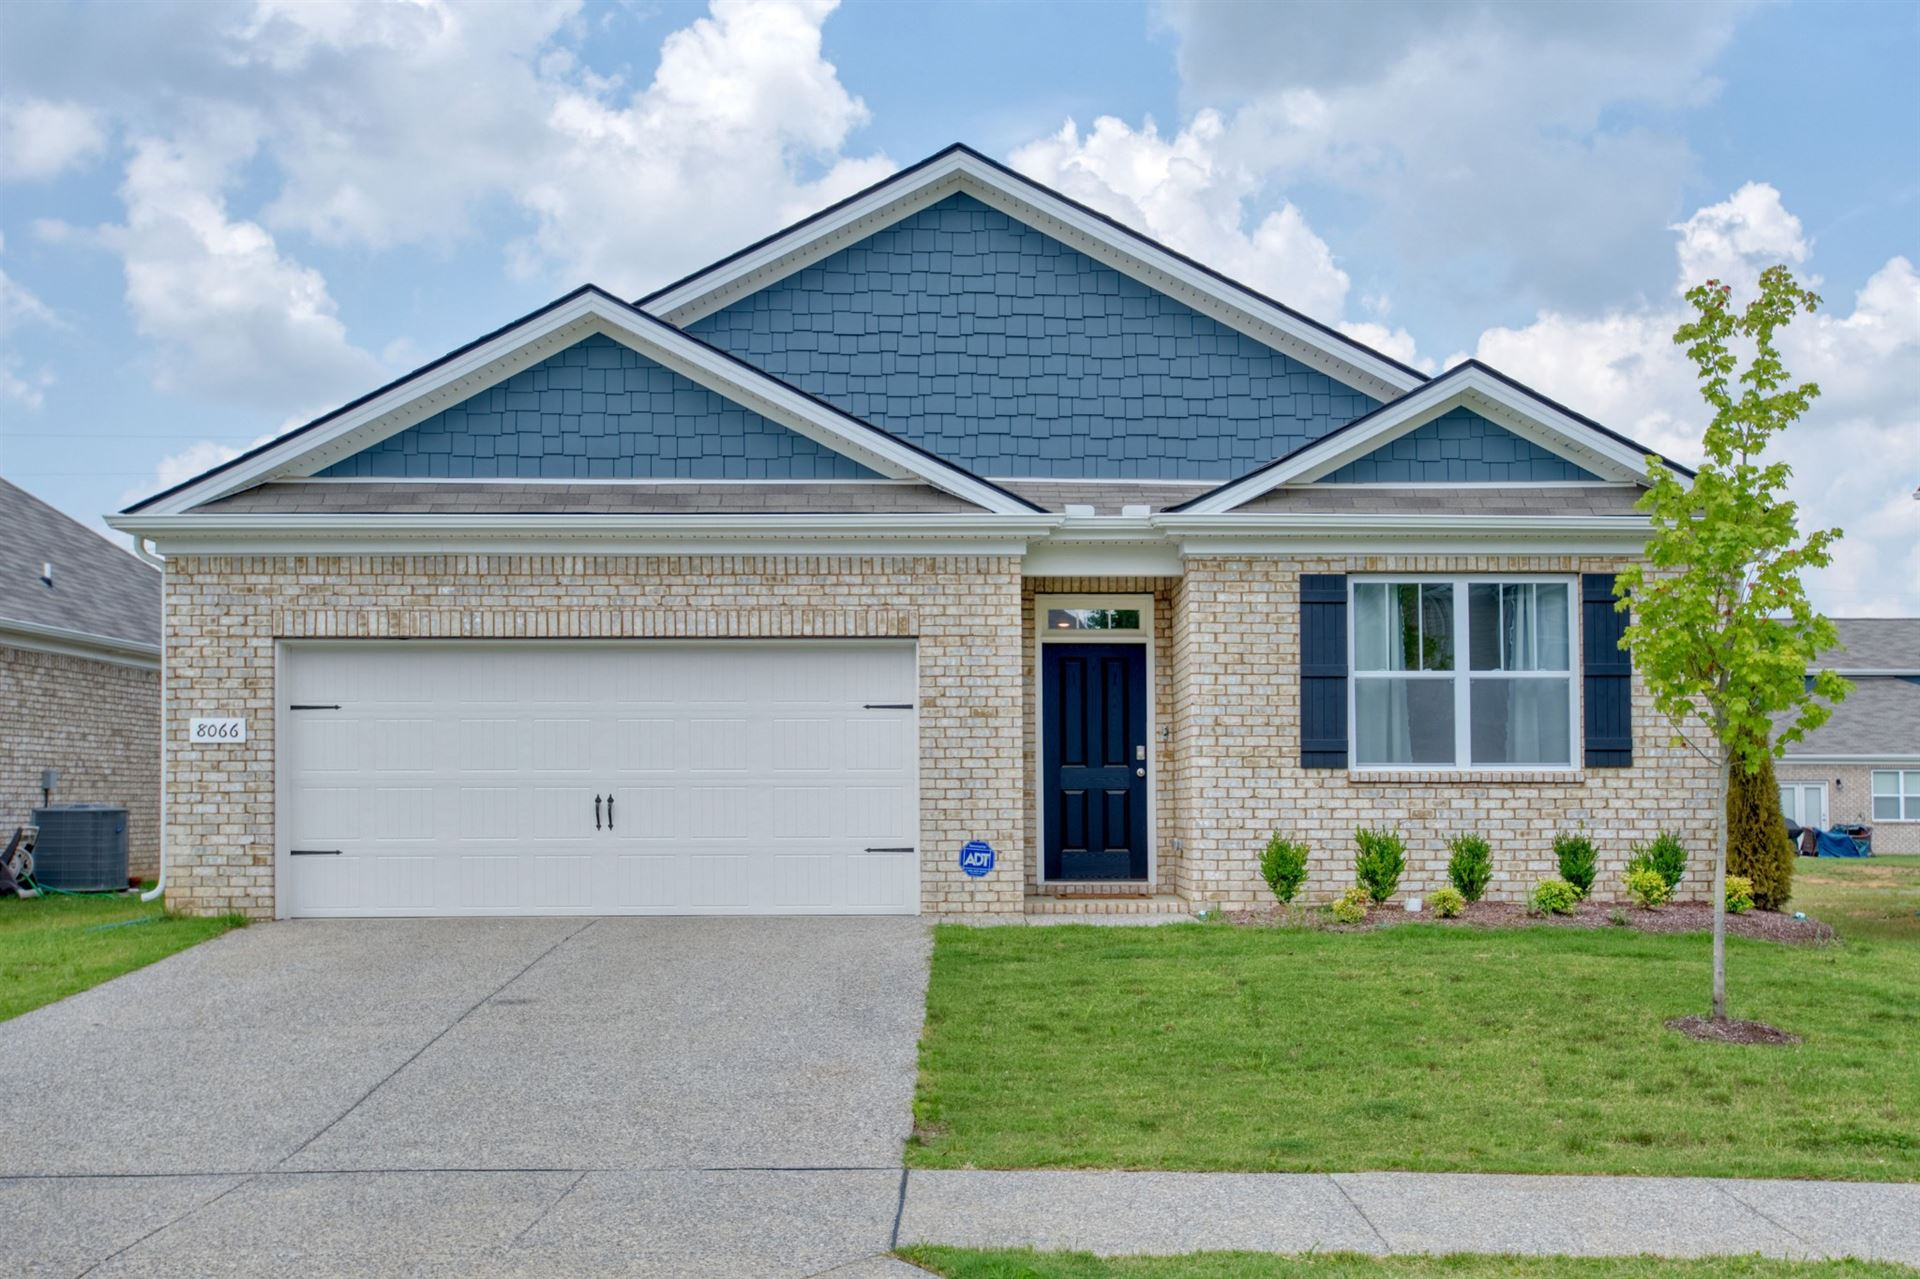 8066 Forest Hills Dr, Spring Hill, TN 37174 - MLS#: 2276705